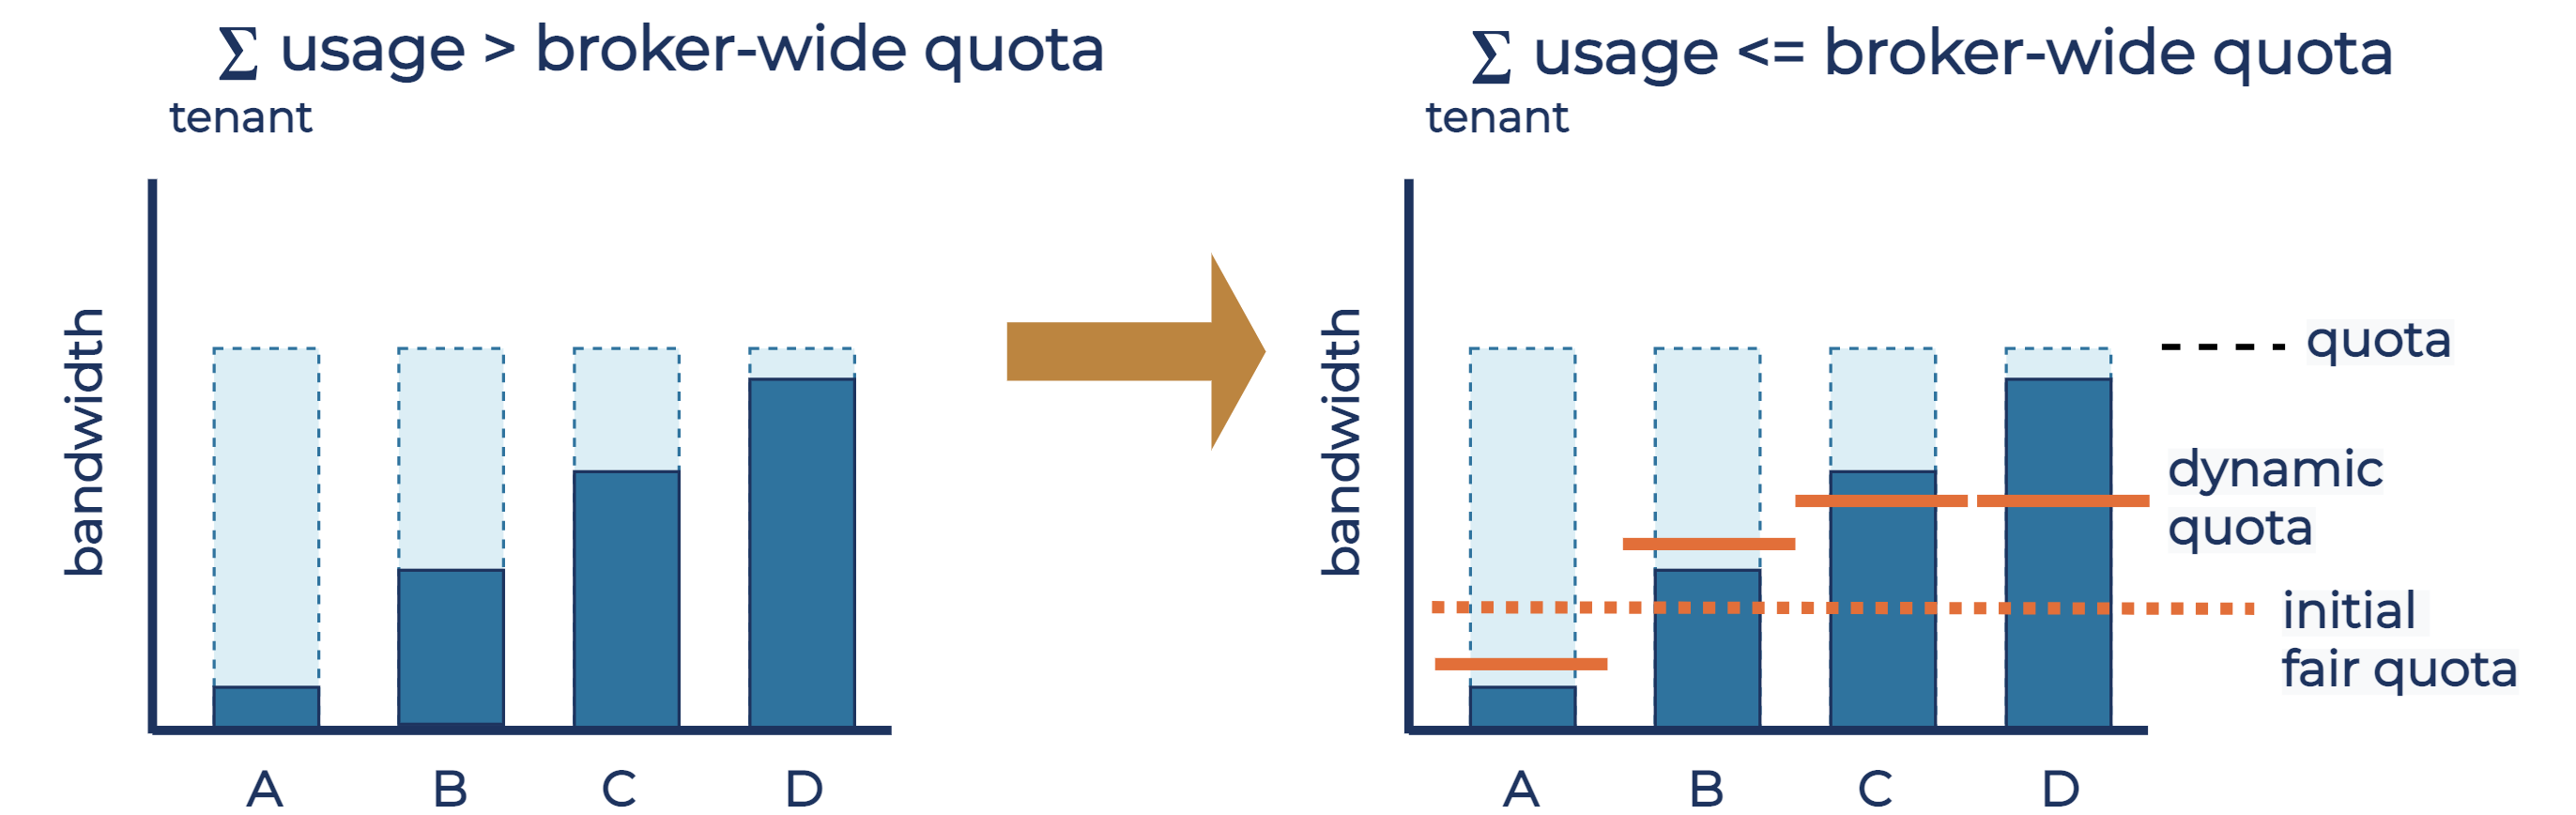 How the algorithm determines the dynamic quota for bandwidth quotas, where quotas of all tenants are equal